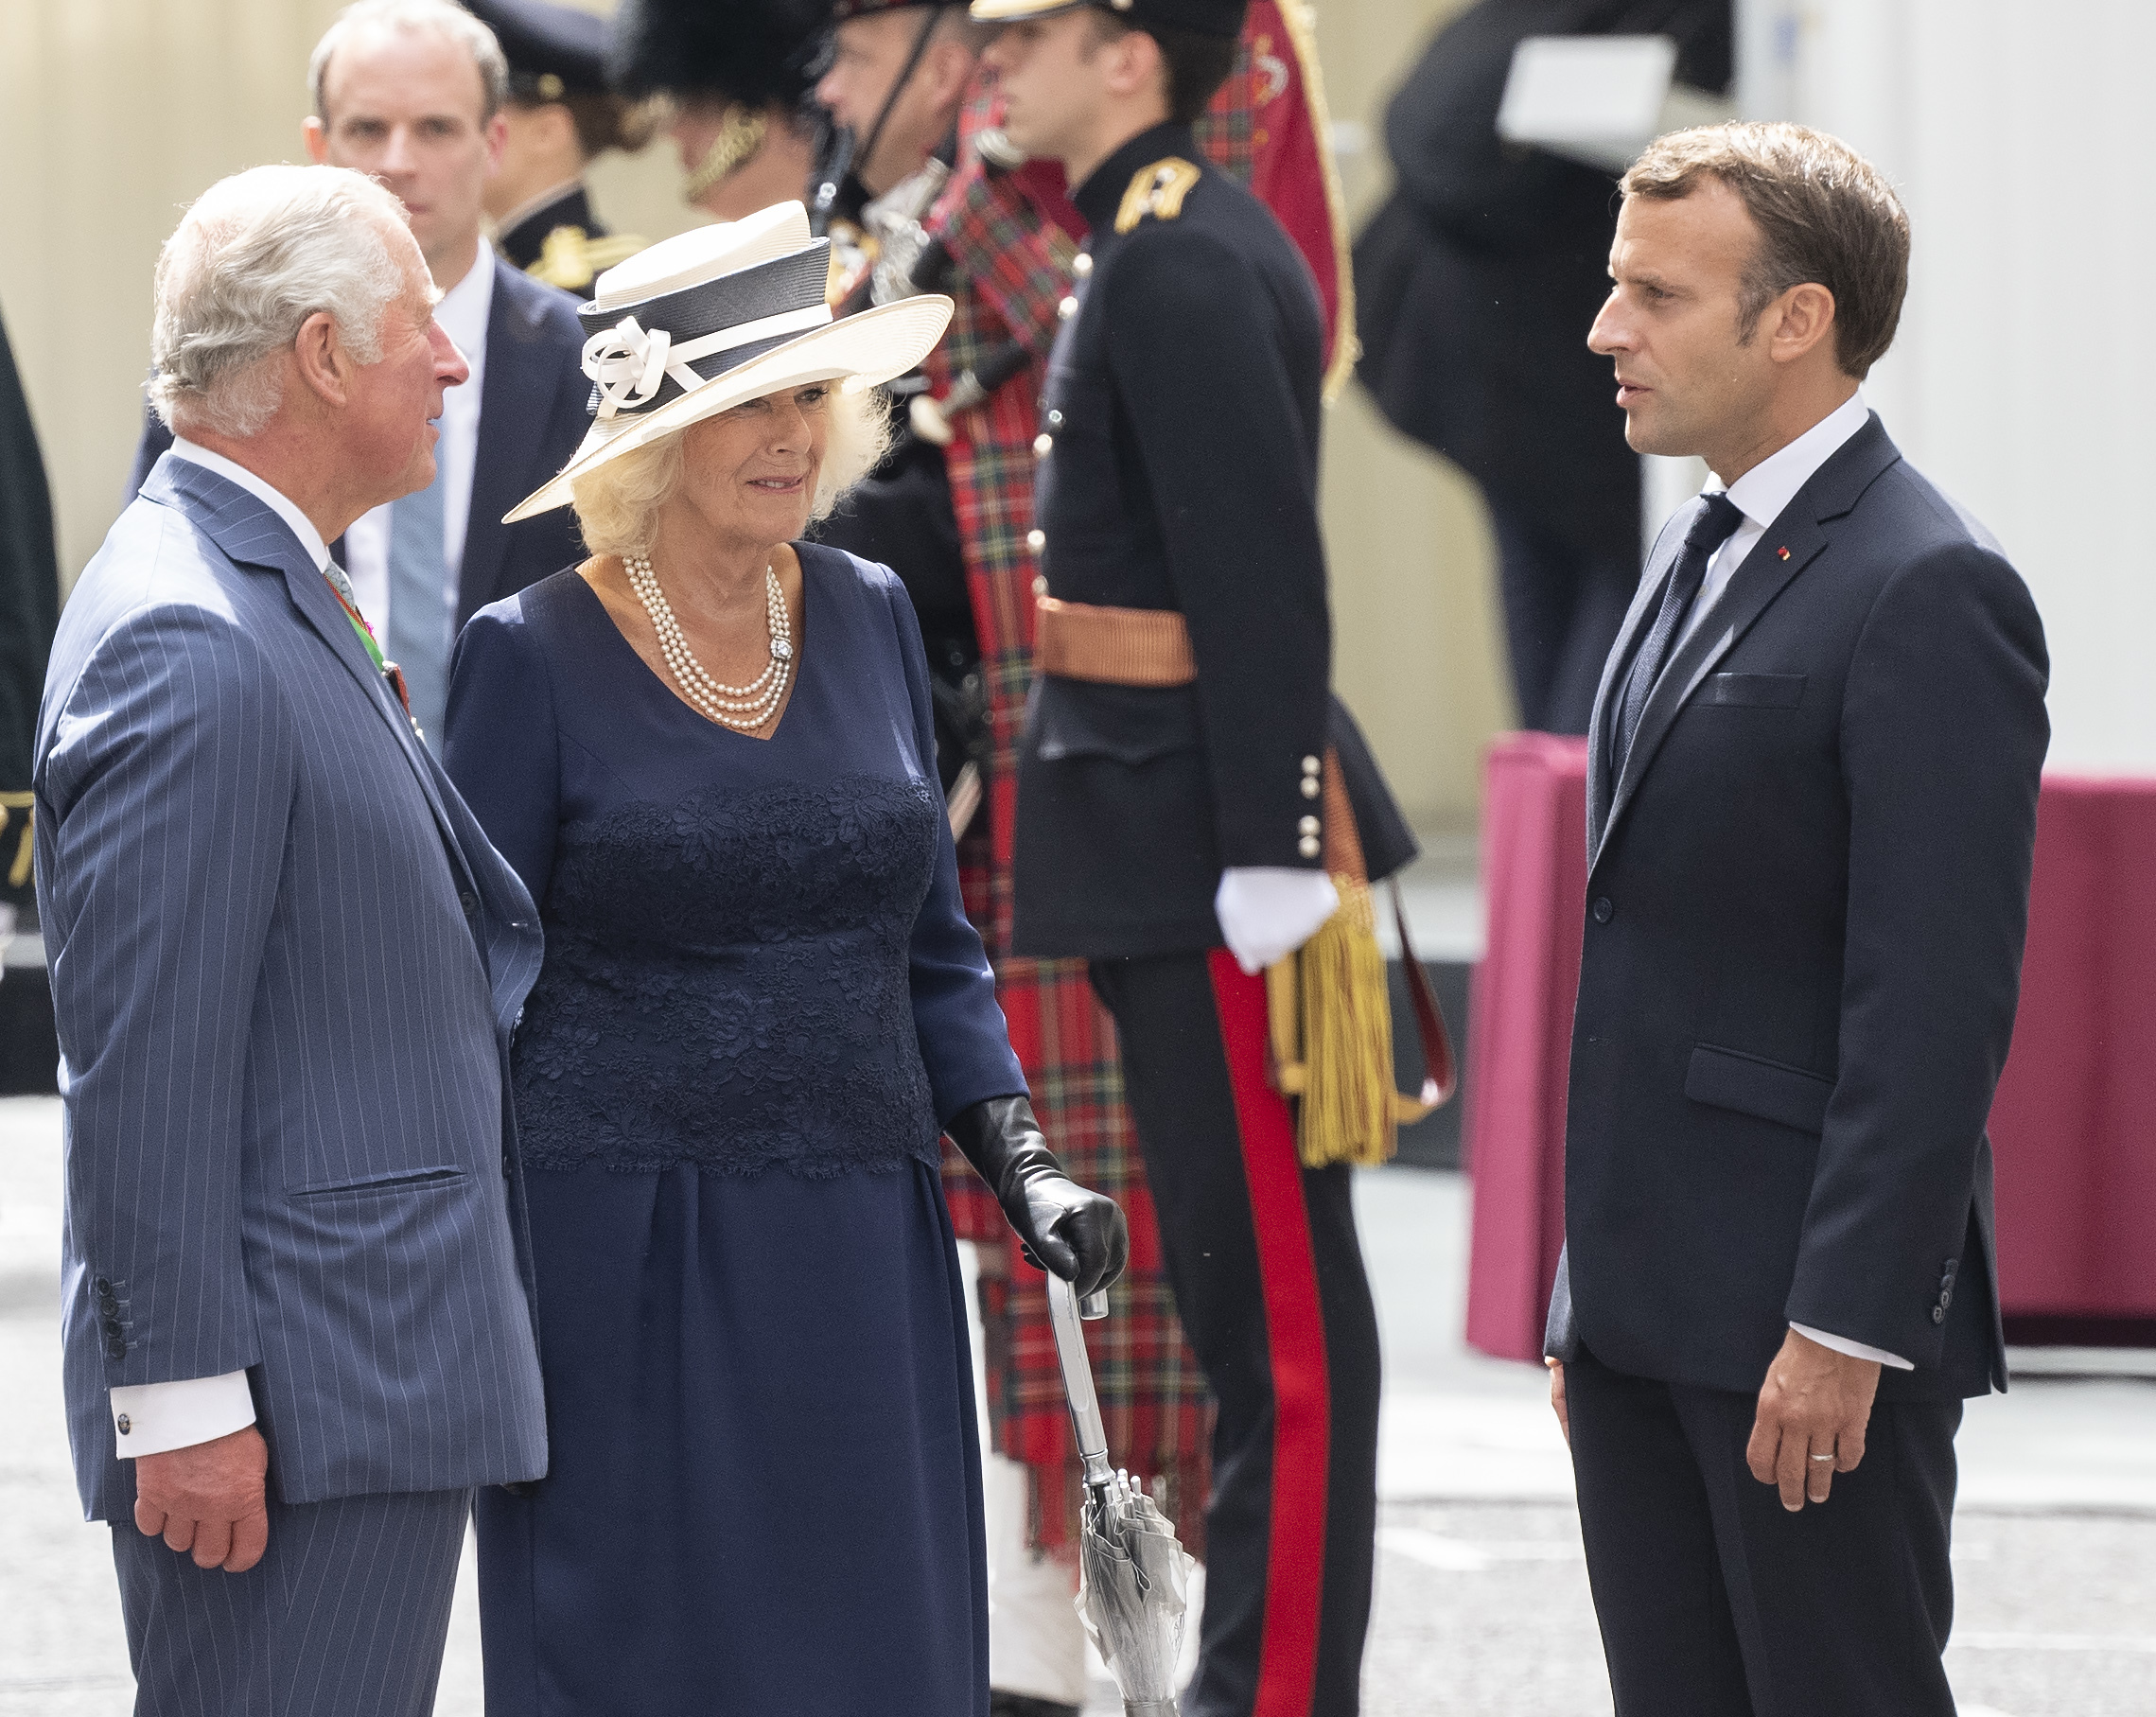 """French President Emmanuel Macron meets Prince Charles, Prince of Wales and Camilla, Duchess of Cornwall during a ceremony at Carlton Gardens. The French president is visiting London on June 18, 2020 to commemorate the 80th anniversary of Charles de Gaulle's BBC broadcast to occupied France following the Nazi invasion in 1940 """"Appel"""" ."""